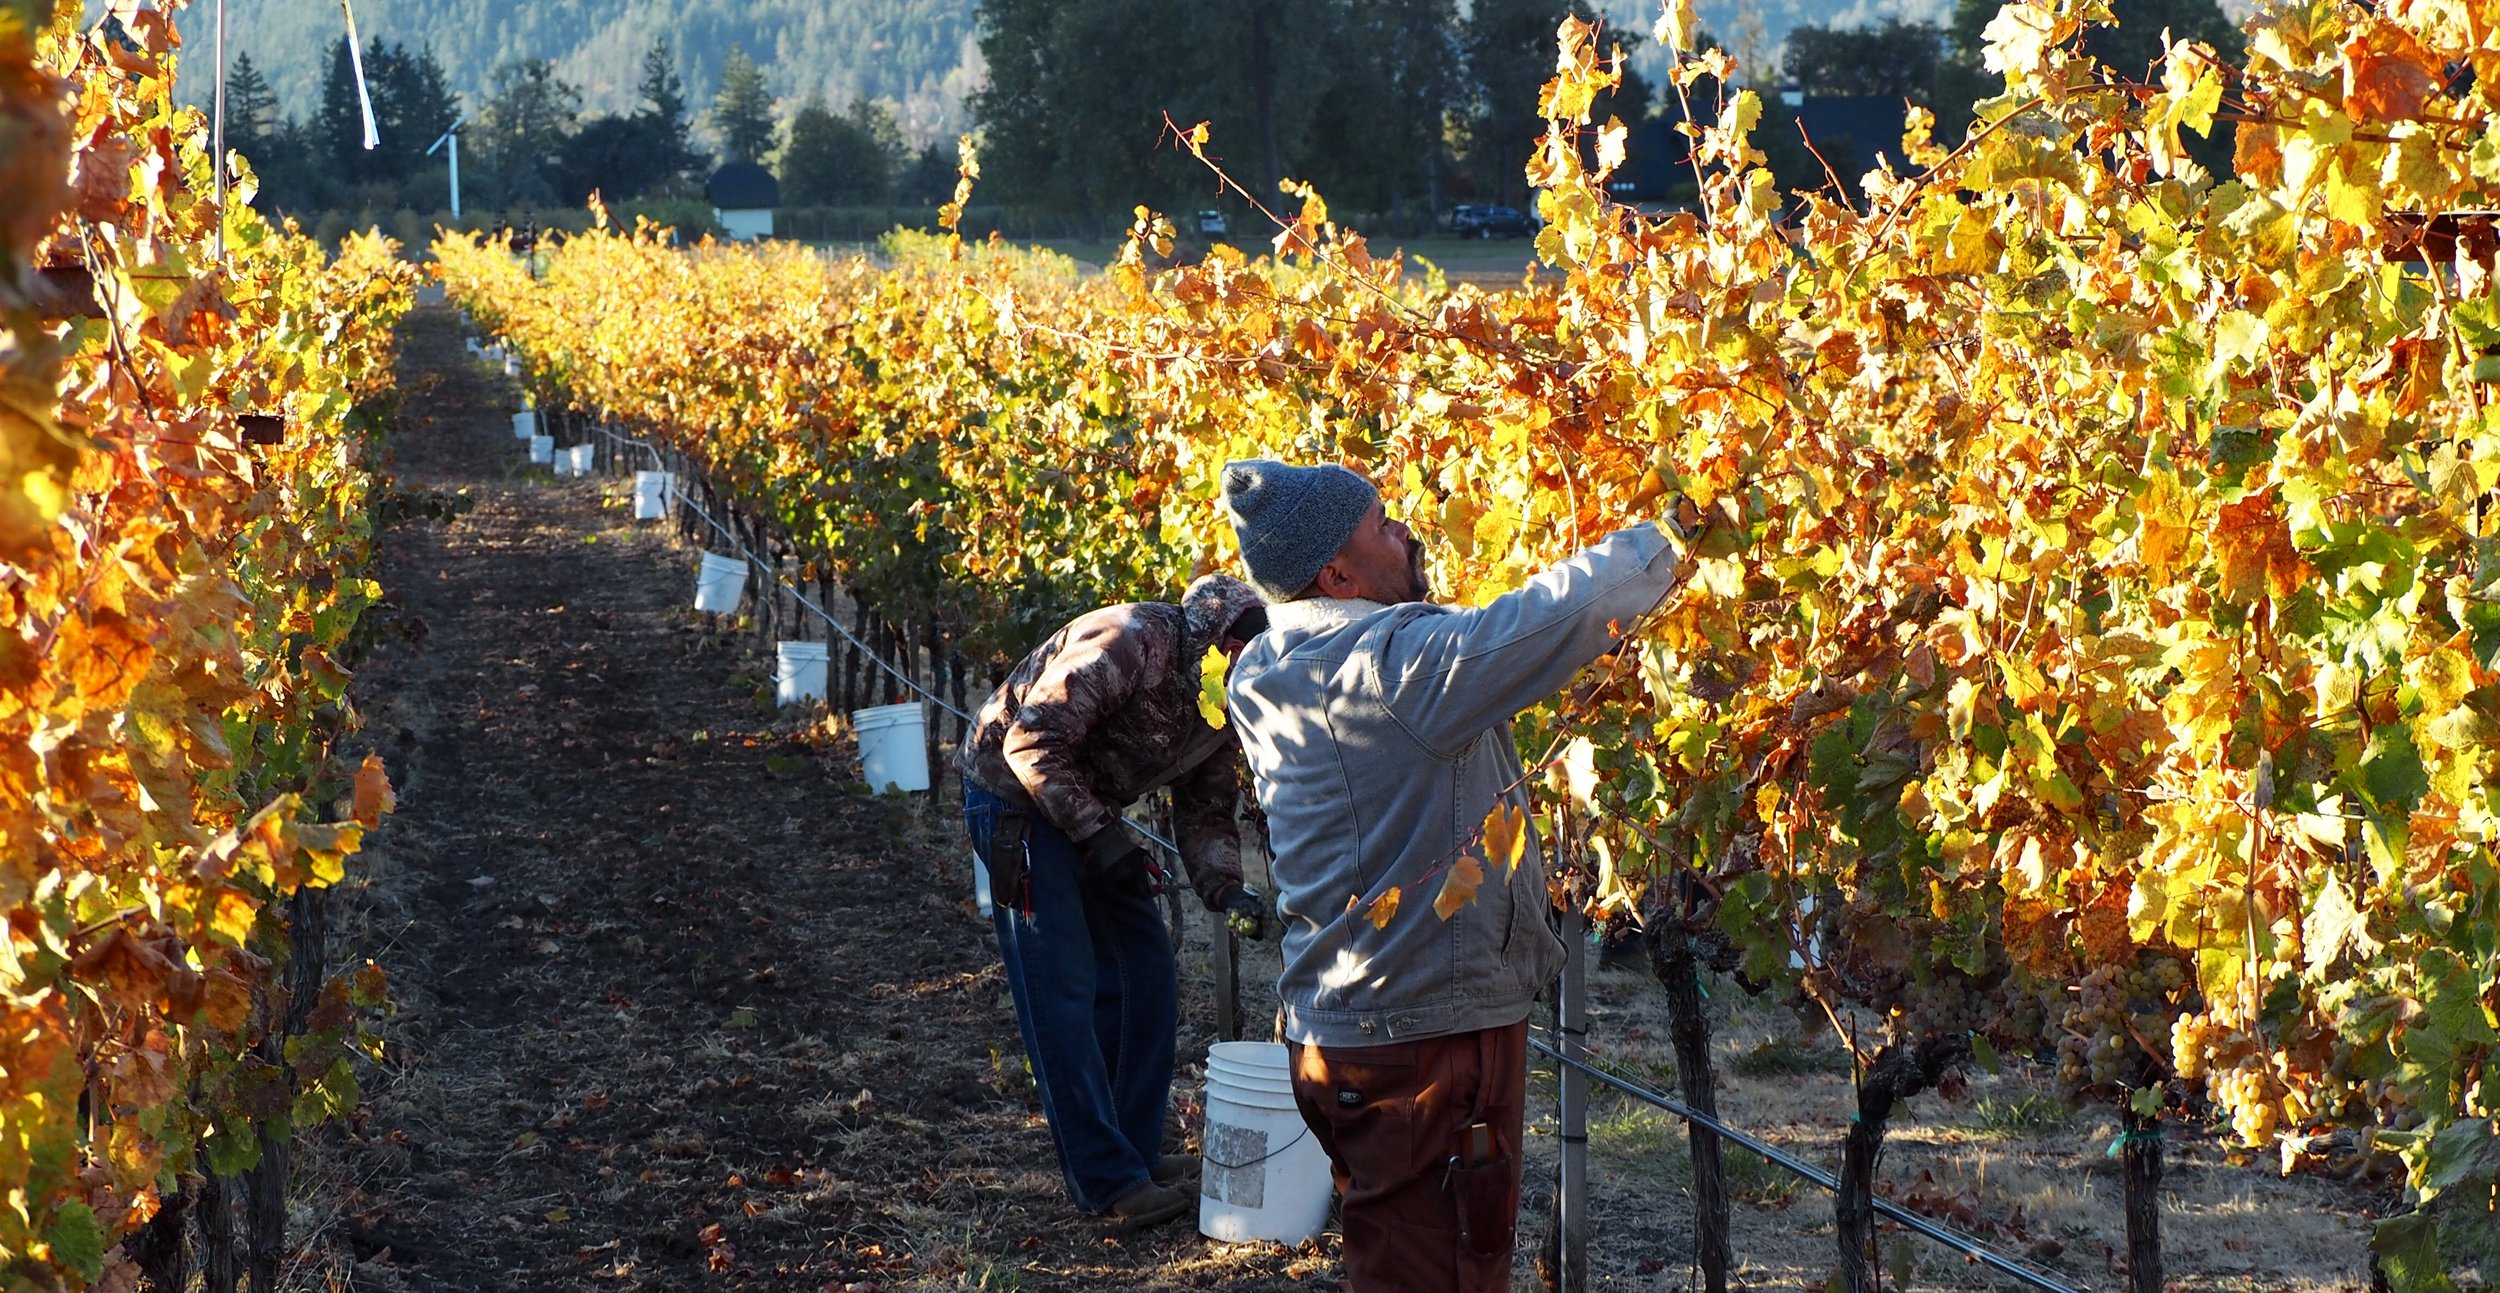 In a biodynamic vineyard, the leaves are fully turned color and falling off when it is time to pick the fruit. This is the natural cycle of a vine.